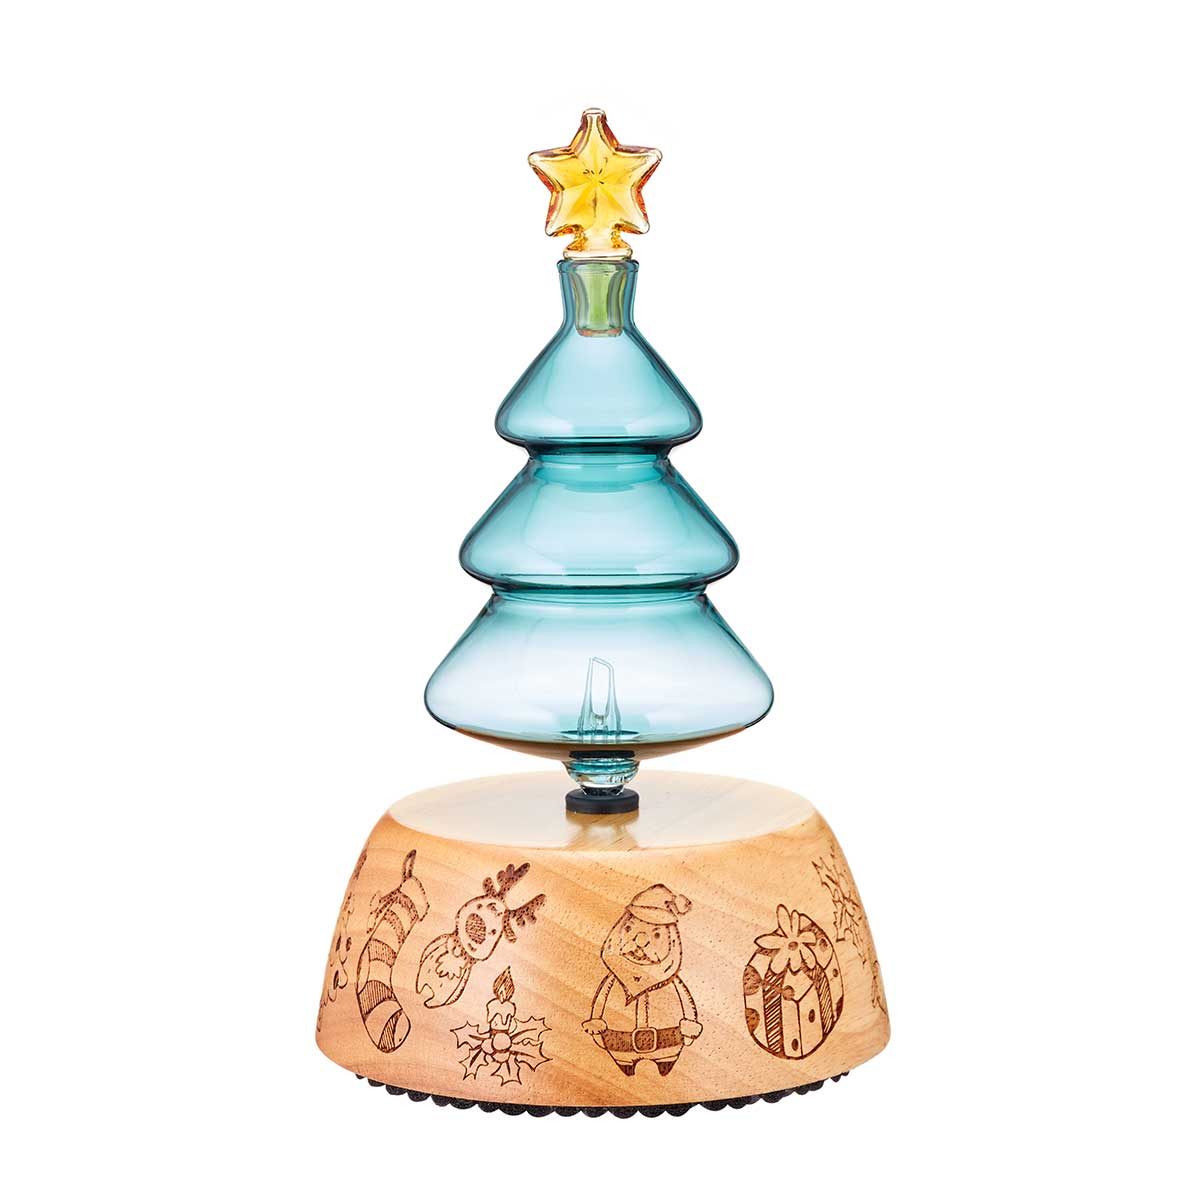 Christmas Tree Nebulizing Diffuser for Aromatherapy - Organic Aromas